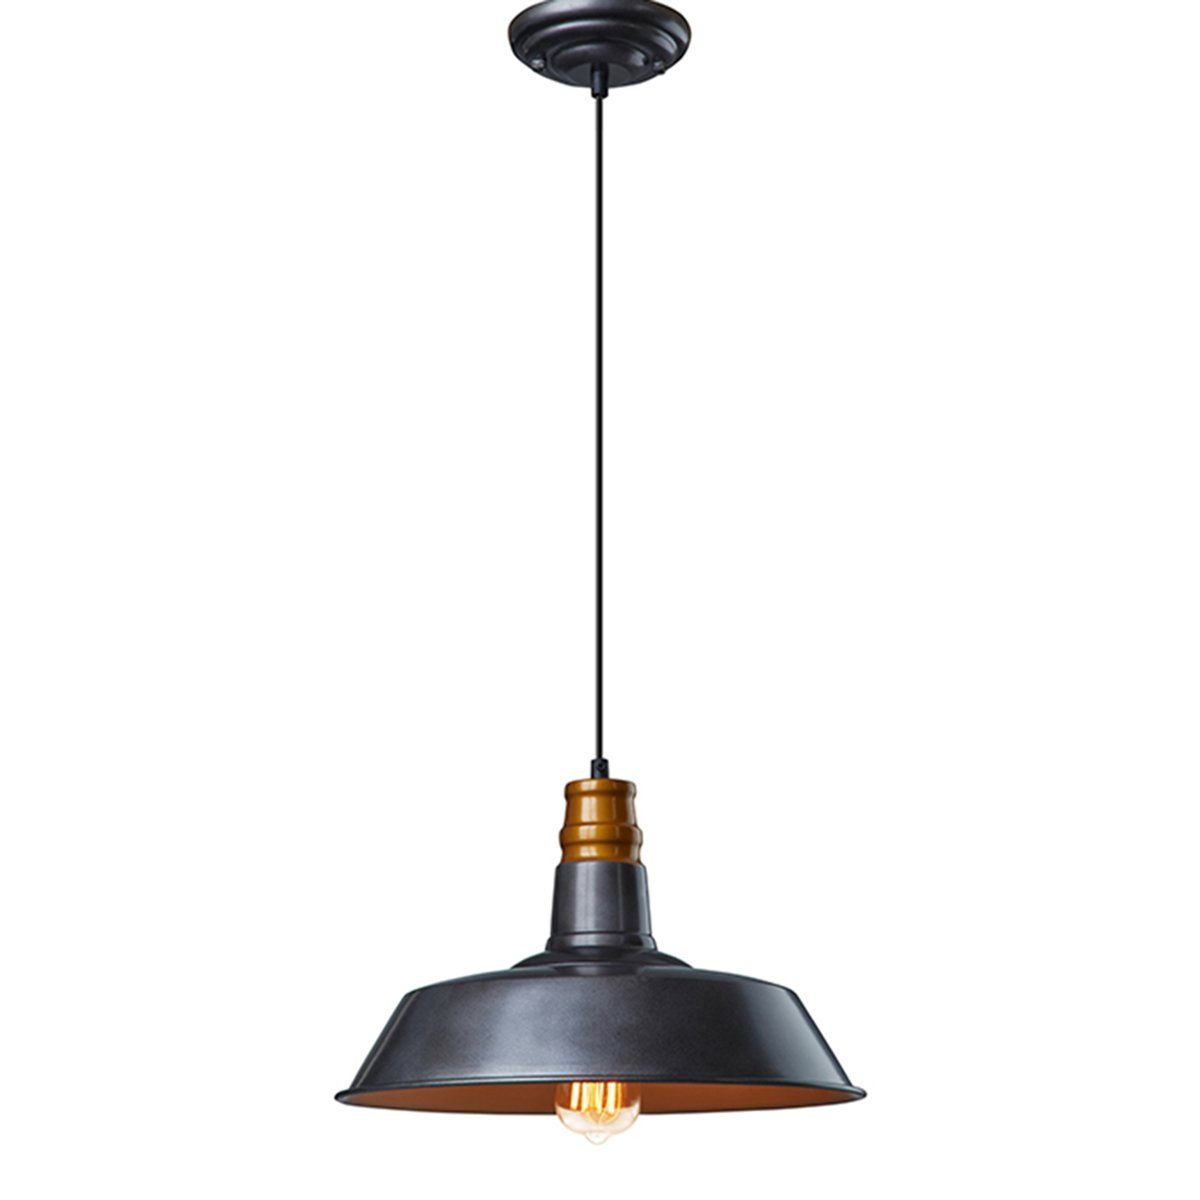 Ecopower industrial barn mini metal pendant light light lighting